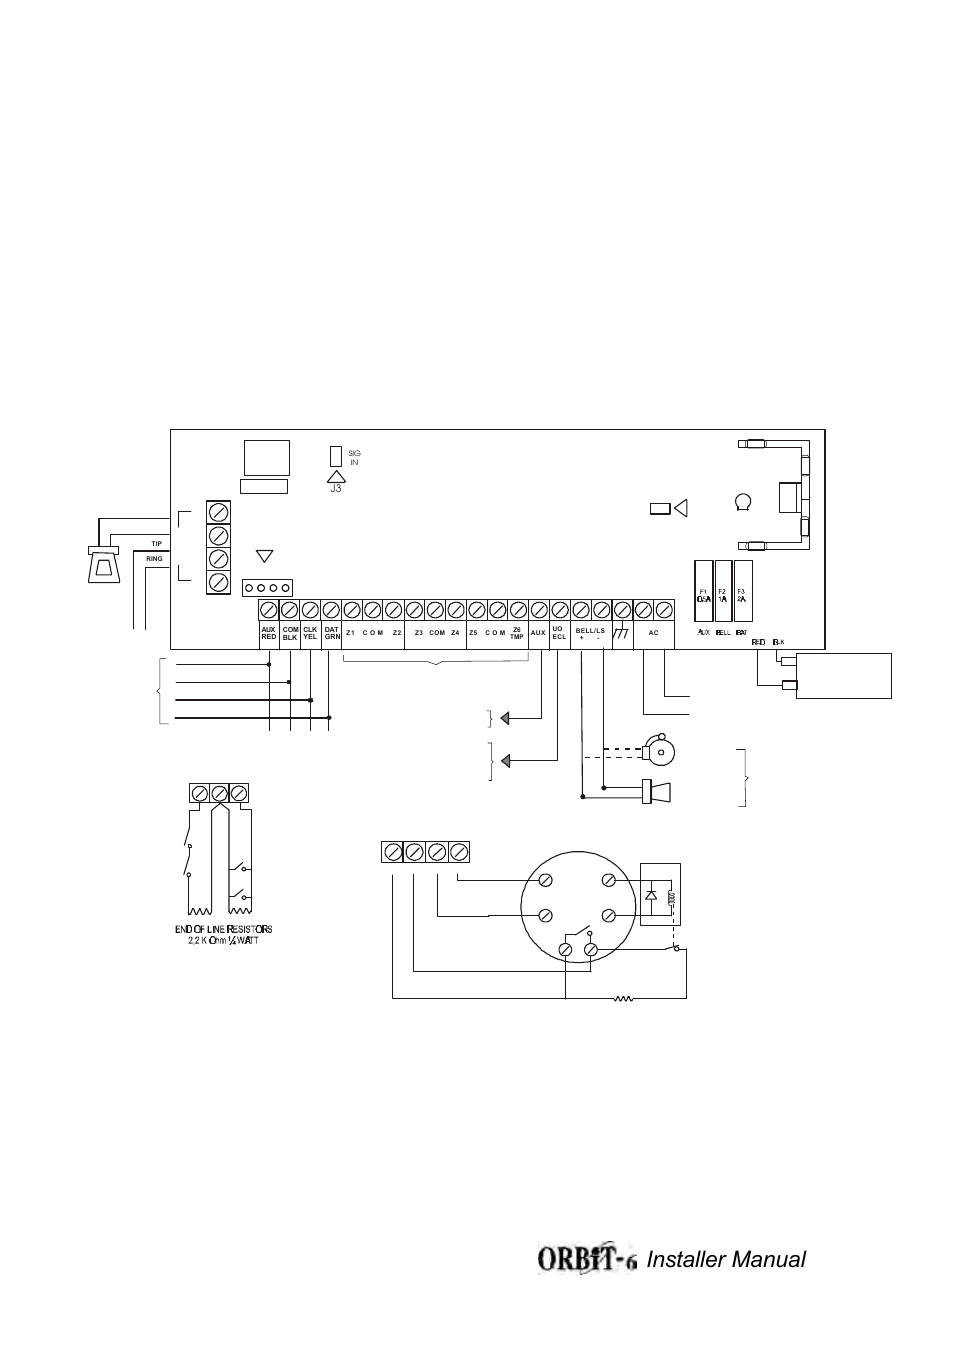 Orbit-6 wiring diagram figure 1a, Installer manual 32